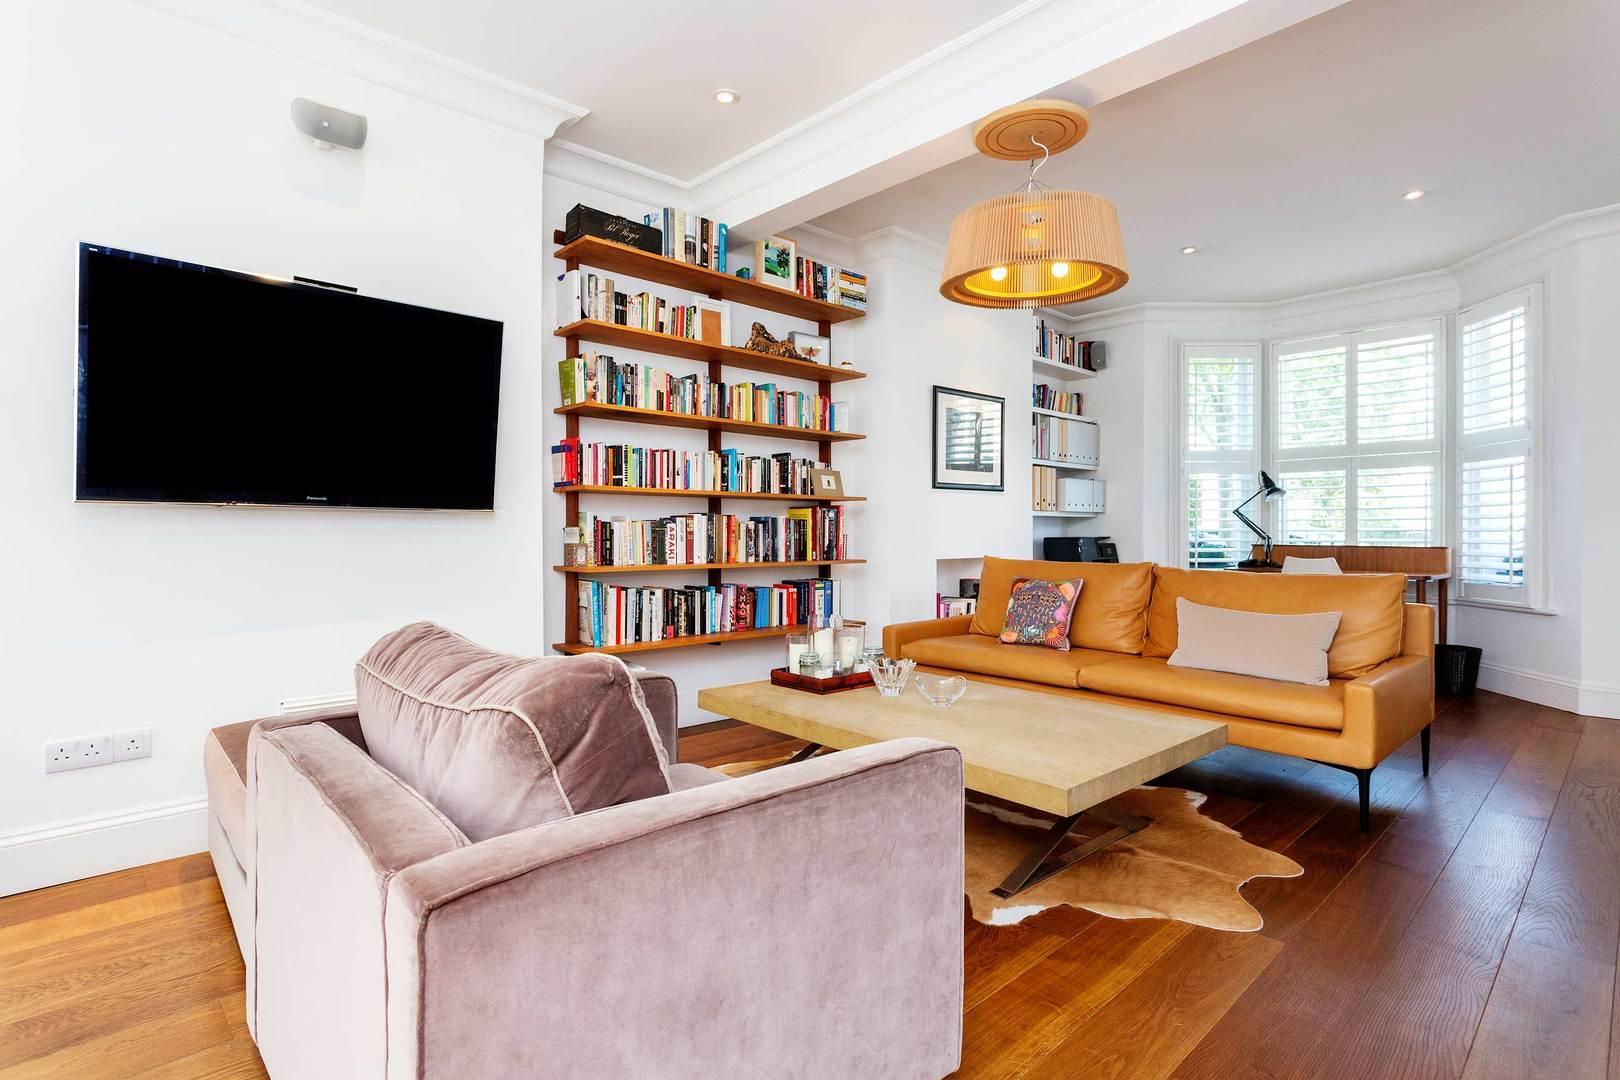 Property Image 2 - Chic Bright Fulham Family Home with Garden near Tube